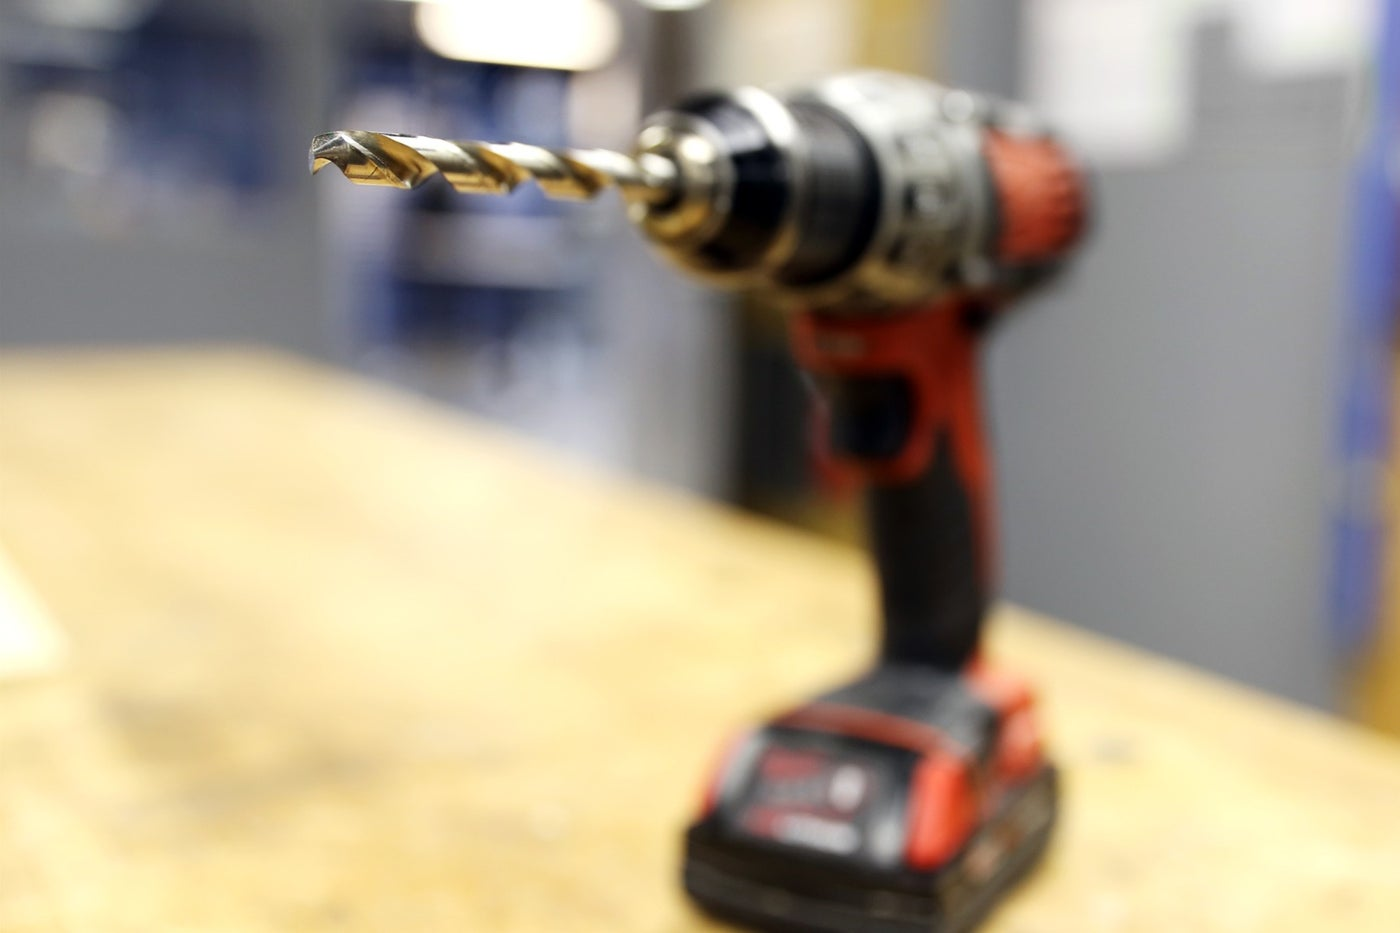 Drilling Perfect Holes